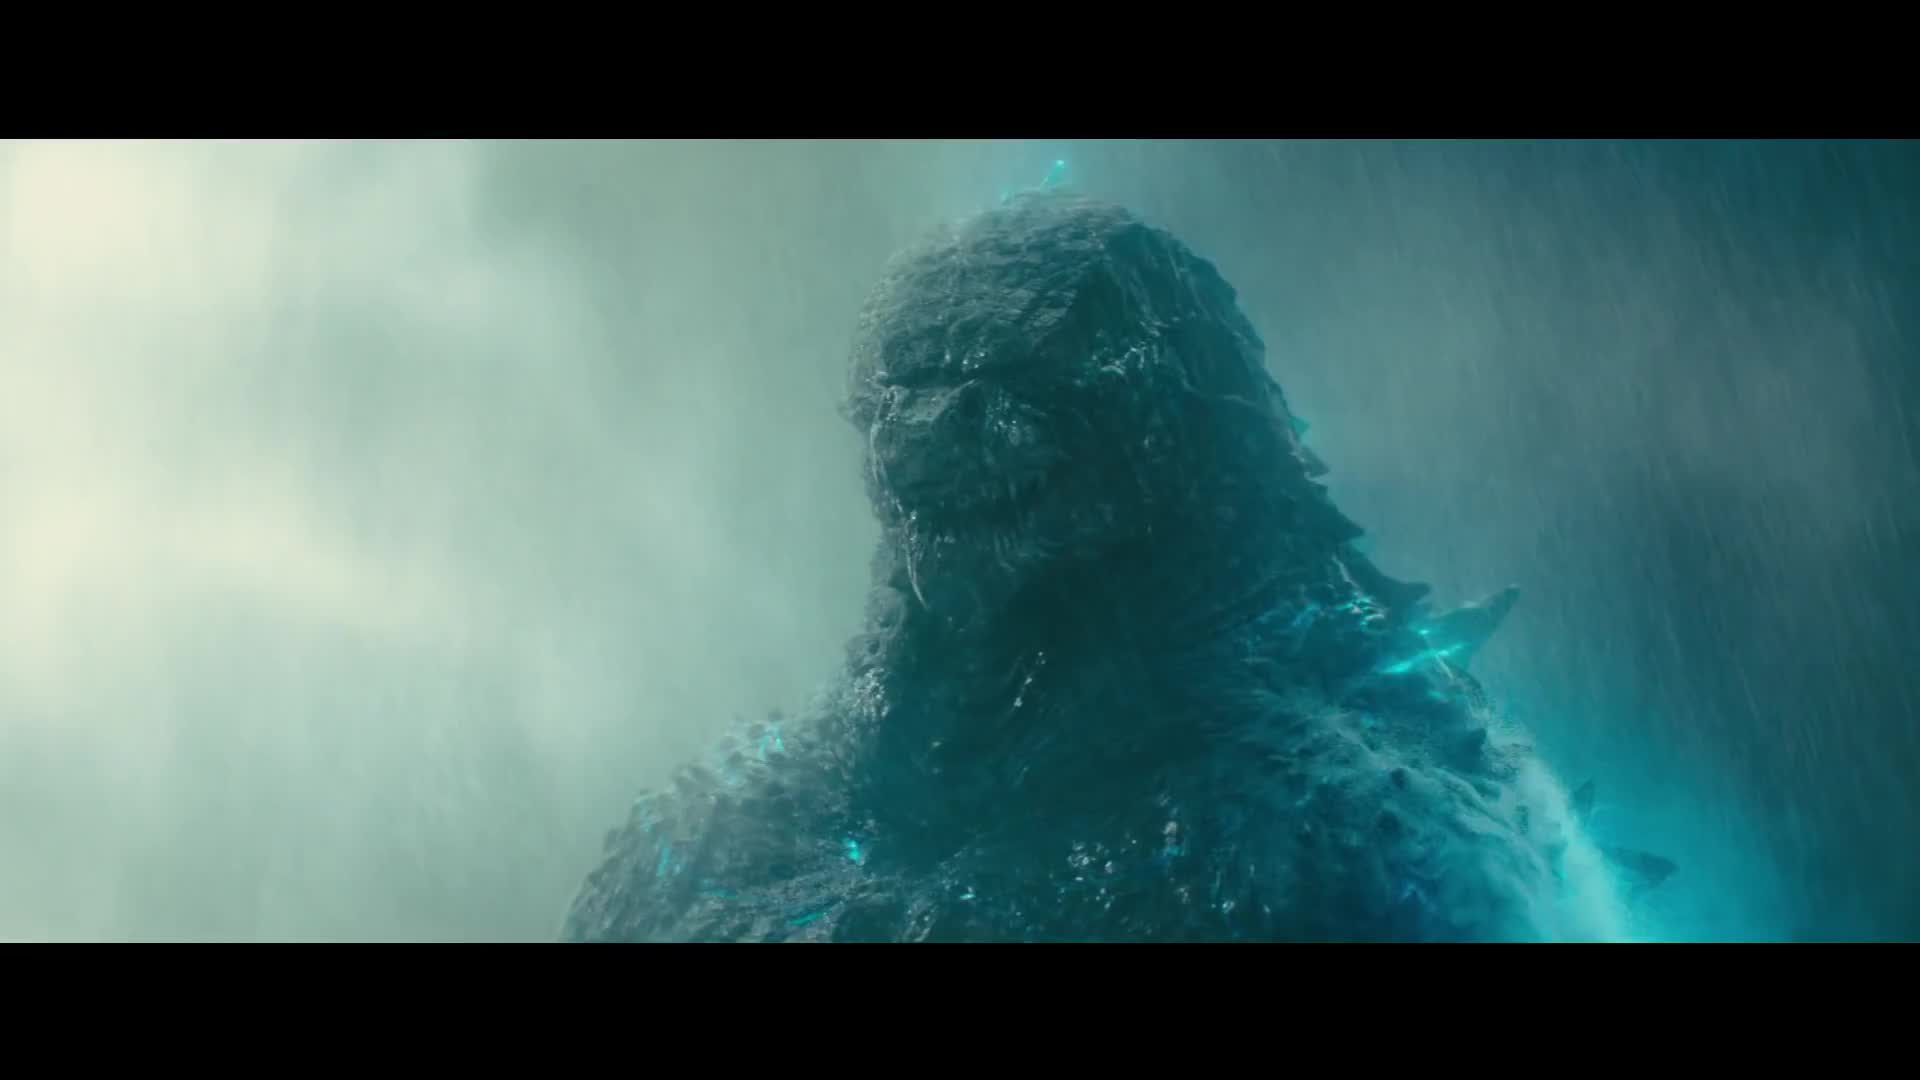 Trailer, Kino, Kinofilm, Warner Bros., Warner Bros, Godzilla 2, Godzilla, King of the Monsters